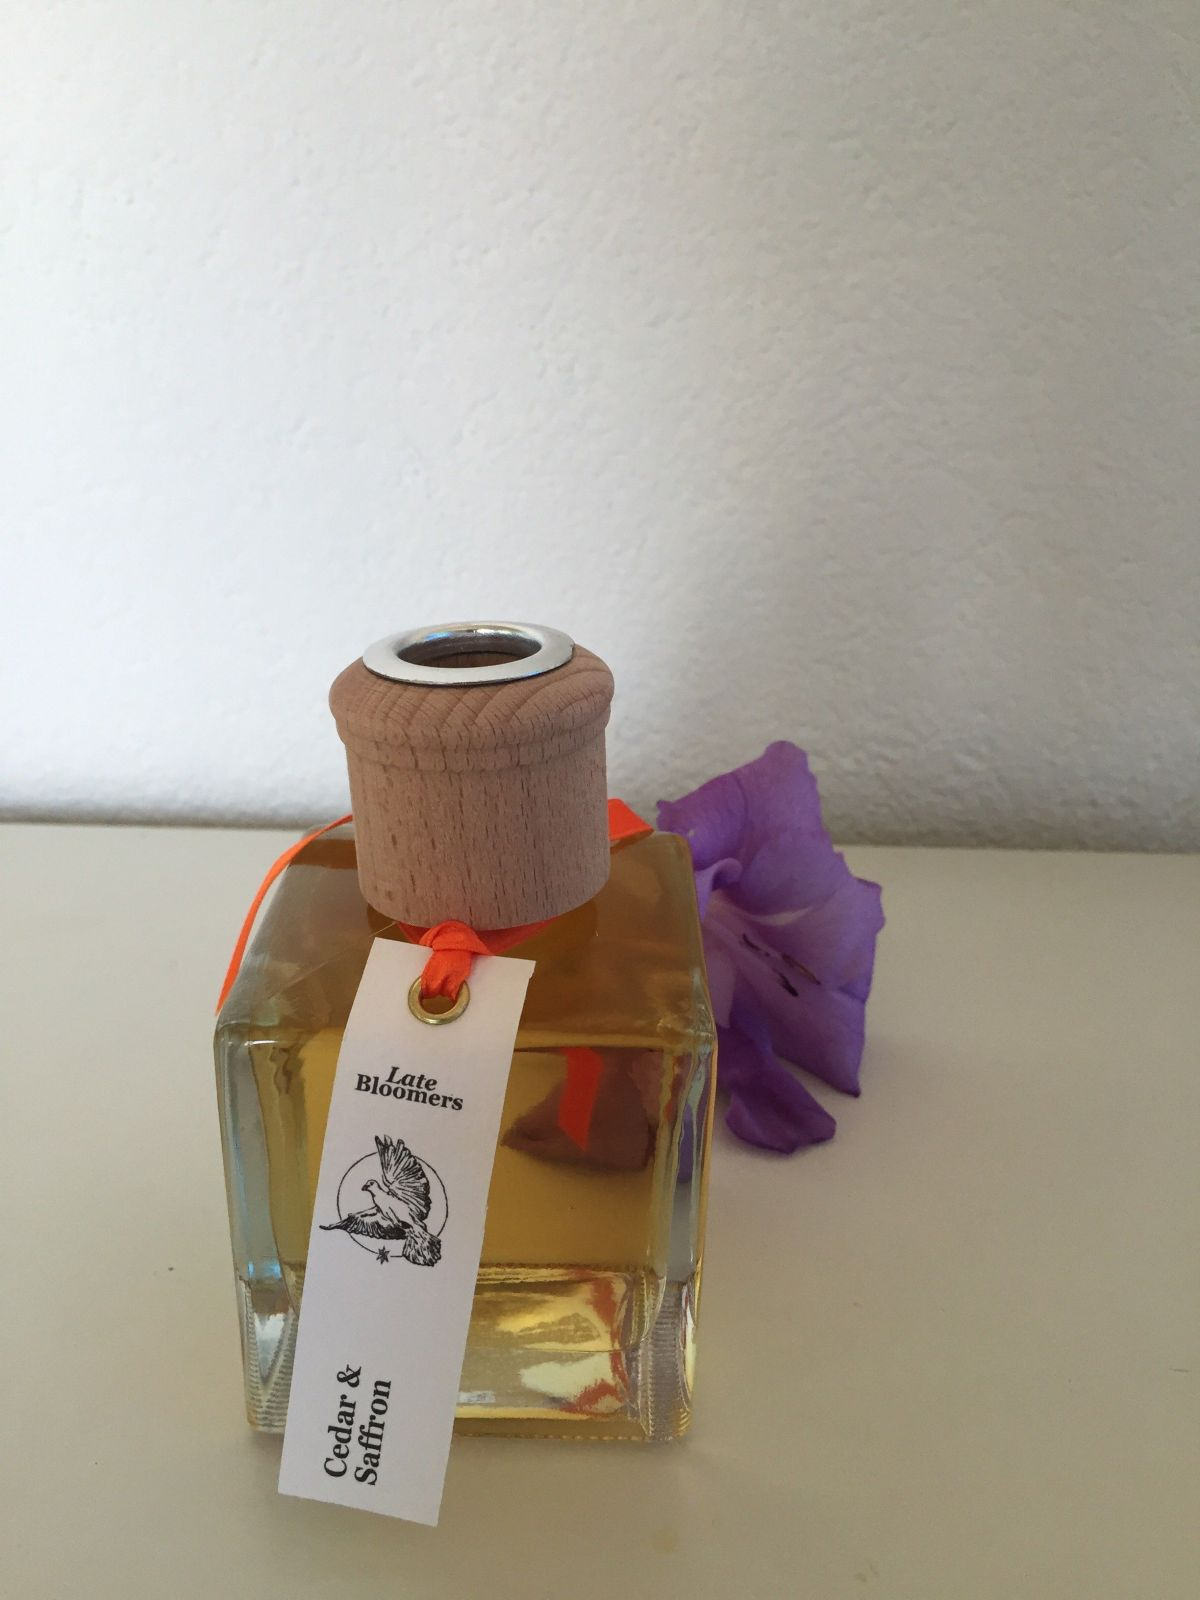 warm and woody blend of cedar, musk, sandalwood, patchouli, saffron, clove and sun-ripened berries